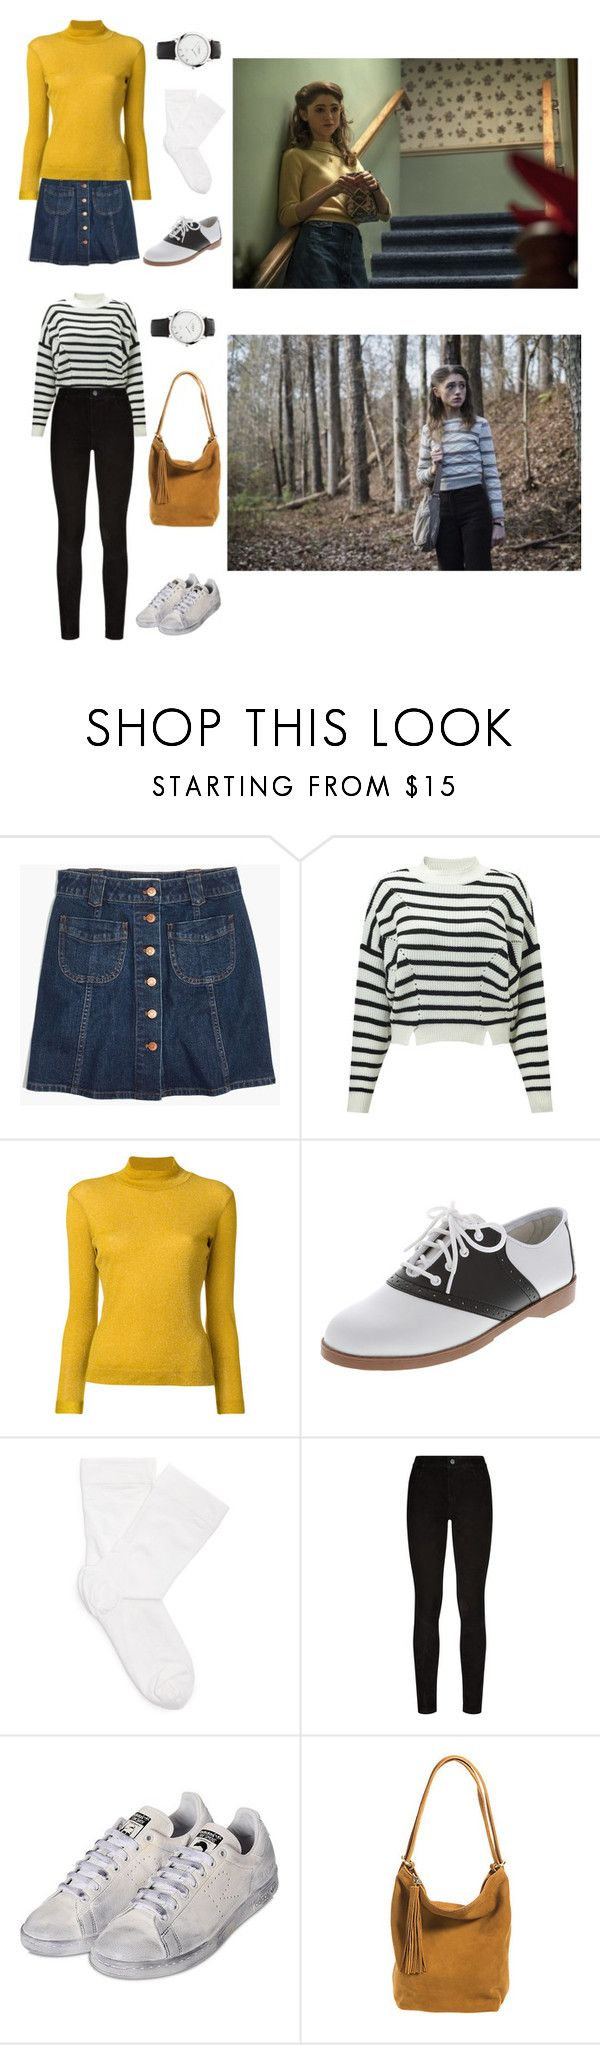 """""""Nancy wheeler - stranger things"""" by kamileigh2006 ❤ liked on Polyvore featuring Madewell, Miss Selfridge, Golden Goose, Oxford, Wolford, Paige Denim, adidas, HOBO and Links of London"""